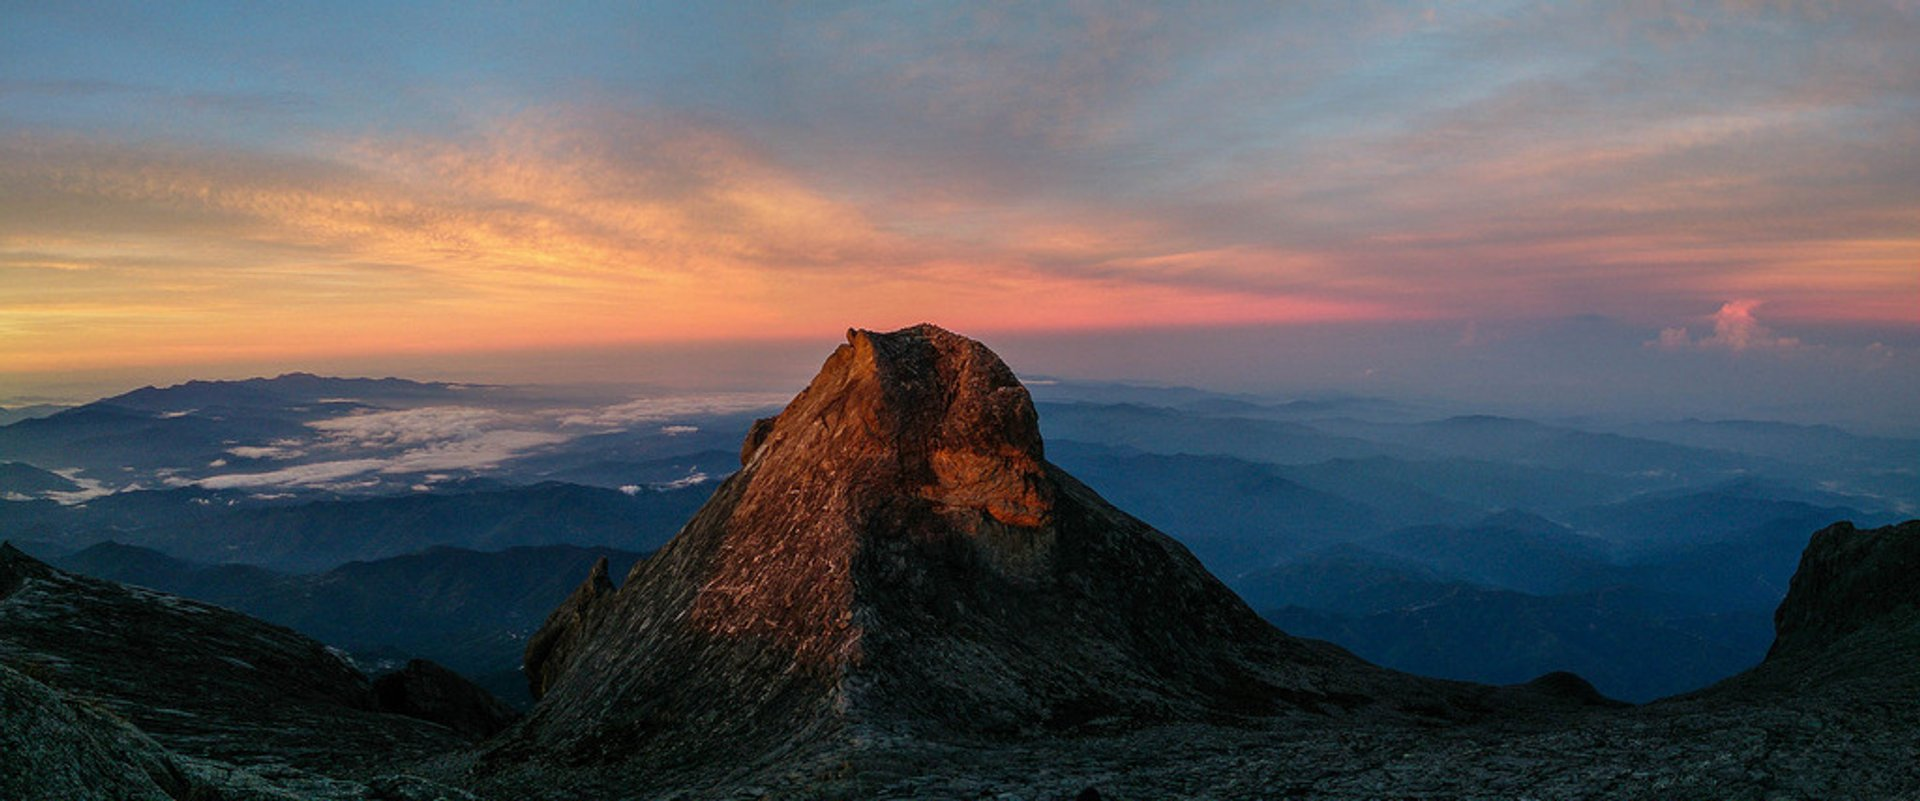 Sunrise on Mount Kinabalu in Borneo 2019 - Best Time